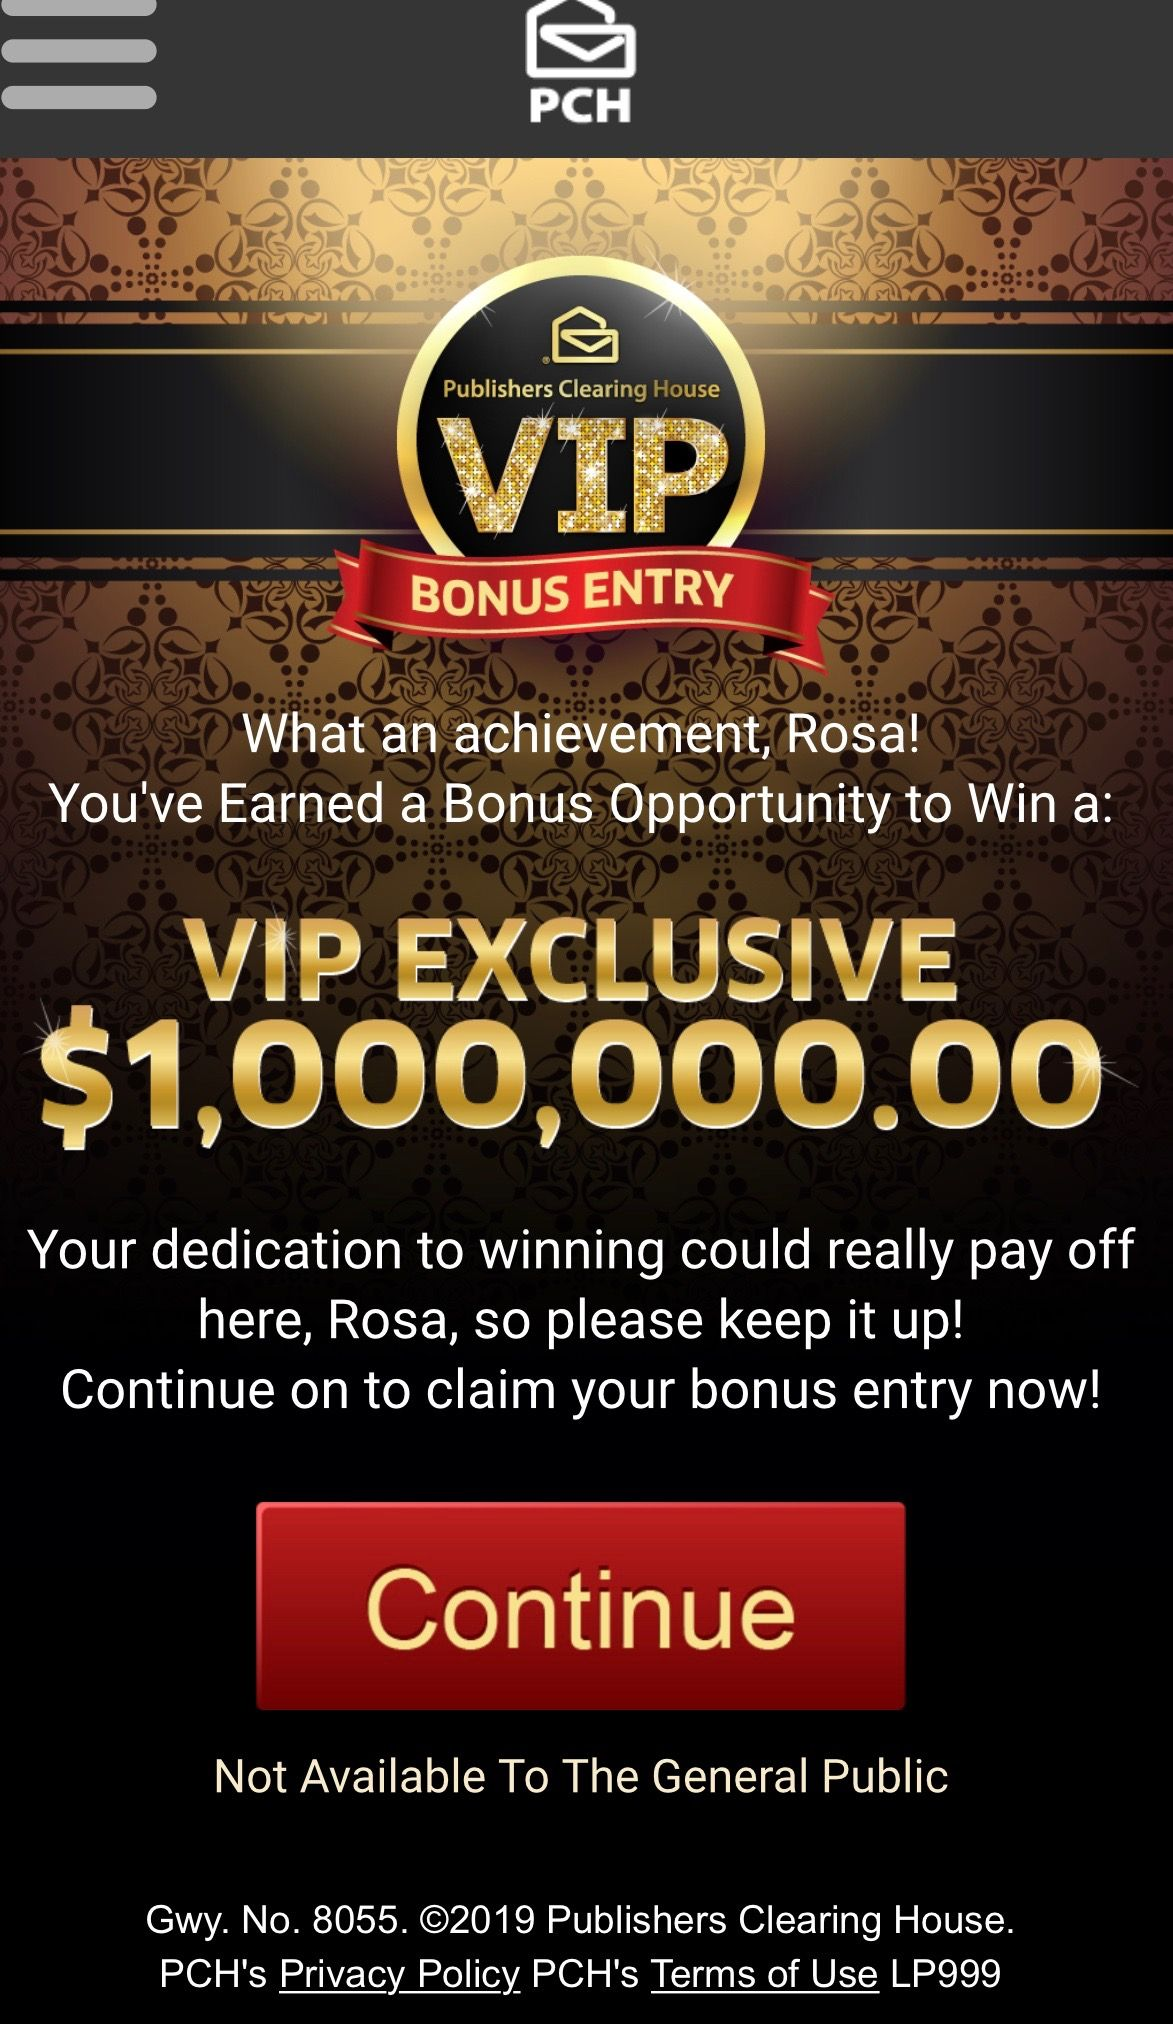 PCH VIP EXCLUSIVE I RROJAS CLAIM MY ENTRY TO WIN $1 MILLION VIP